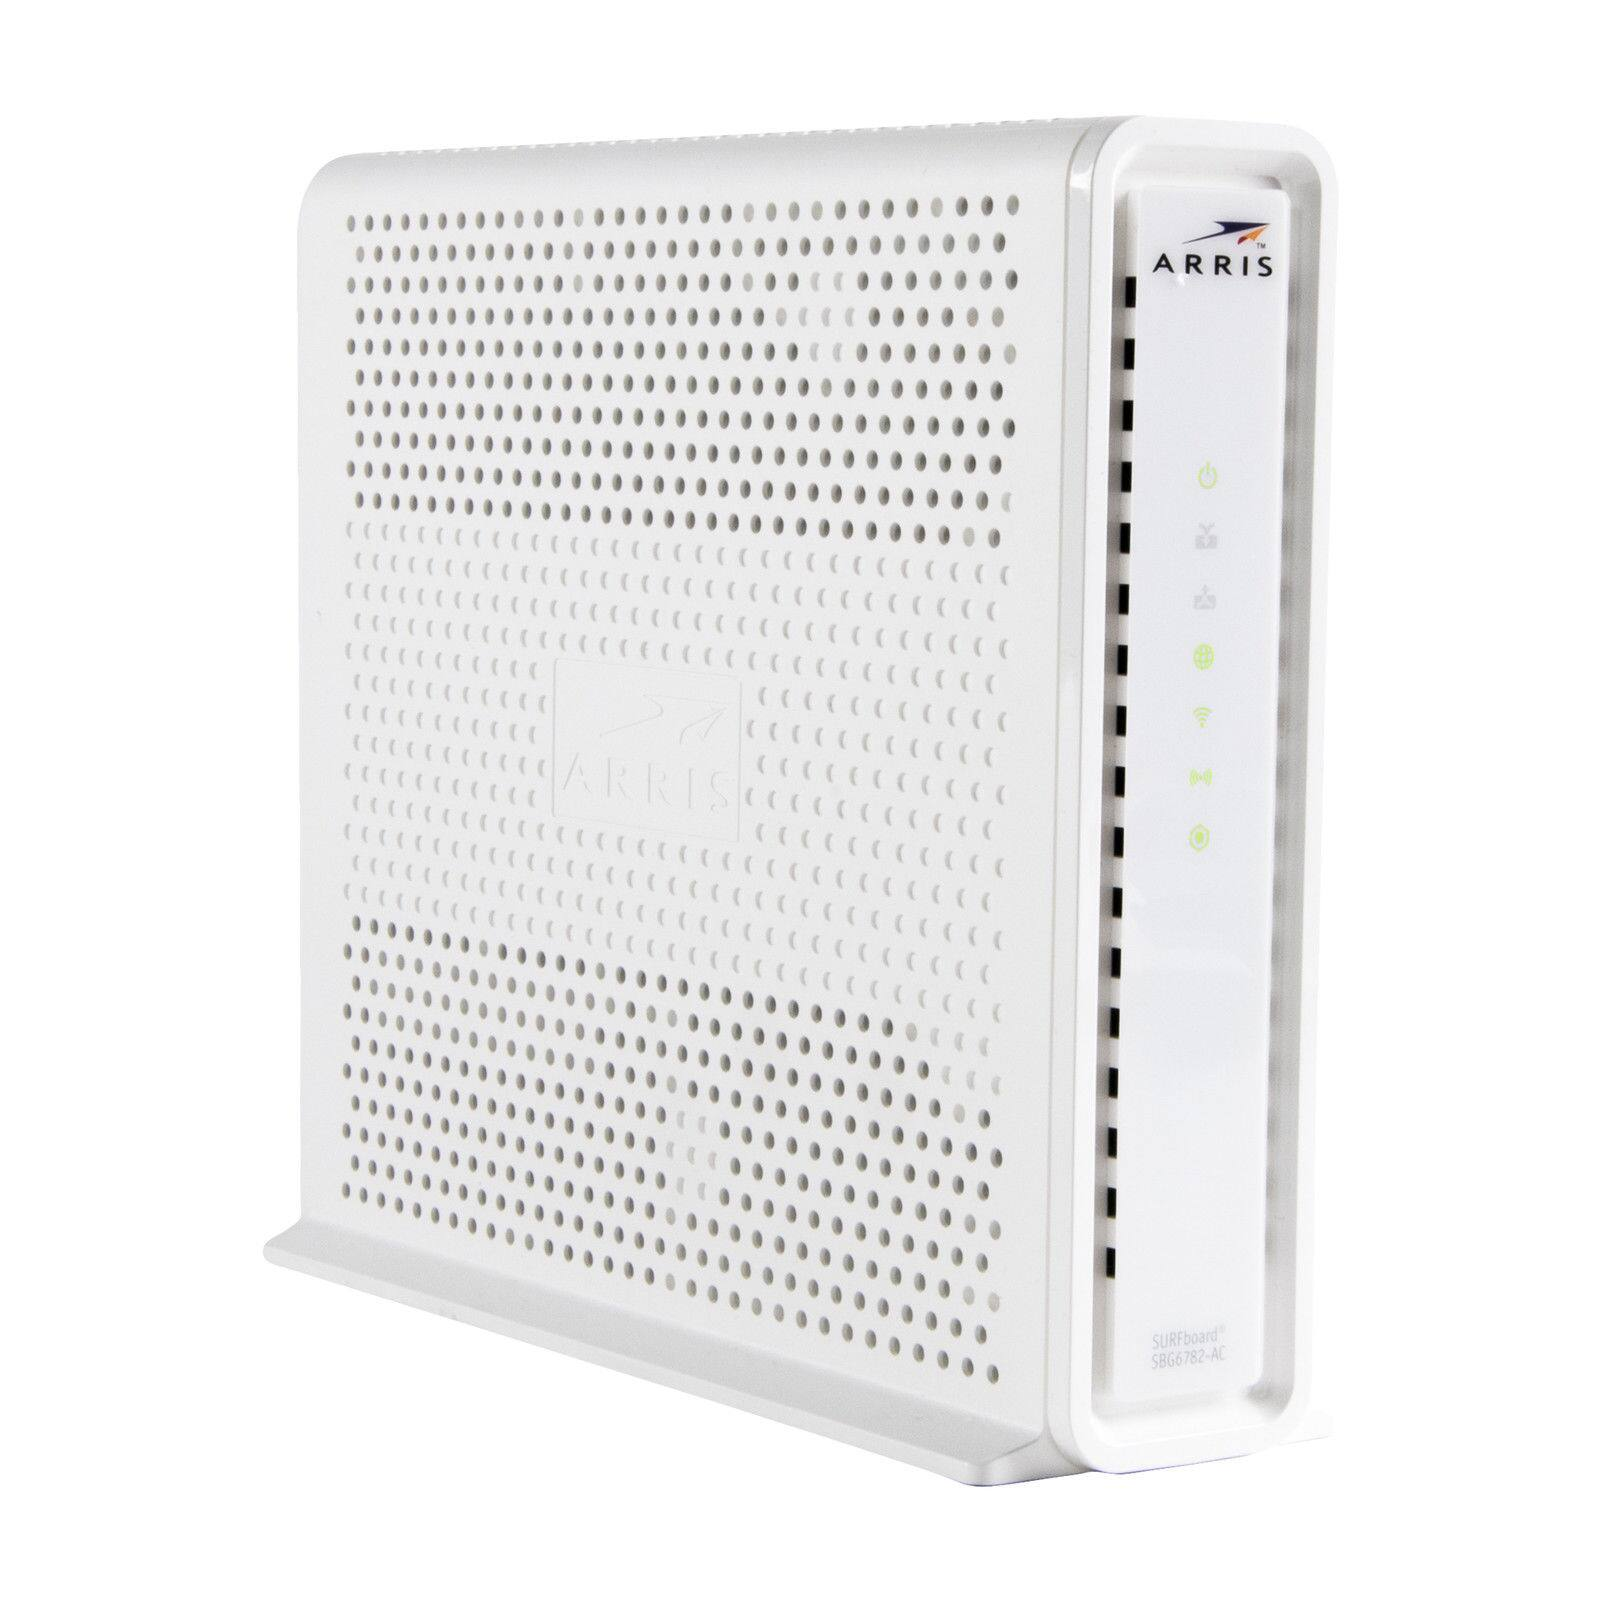 ARRIS SURFboard SBG6782AC DOCSIS 3.0 Modem AC1750 Router (Refurbished)  $78.15 + Free Shipping